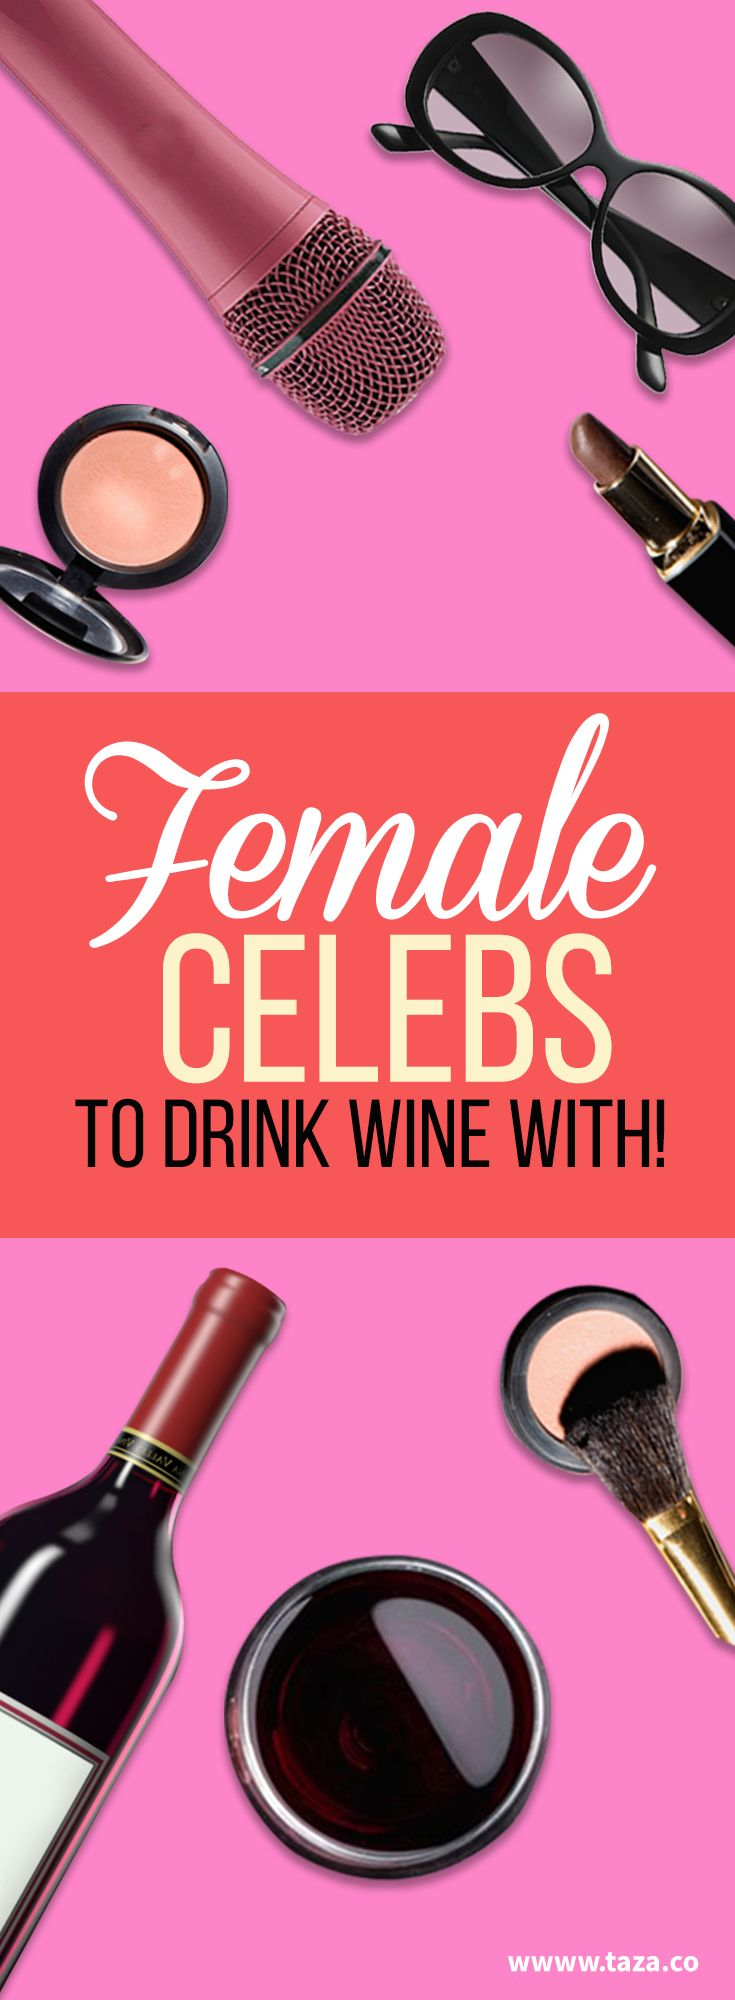 Ever imagine drinking wine with the celebs? Here our are top female celebrities to drink wine with!  #rose #shiraz #cabernet #white #red #vino #singer #producer #activist #actor #talk #show #ellen #beyonce #cameron #diaz #mila #kunis #women #feminism